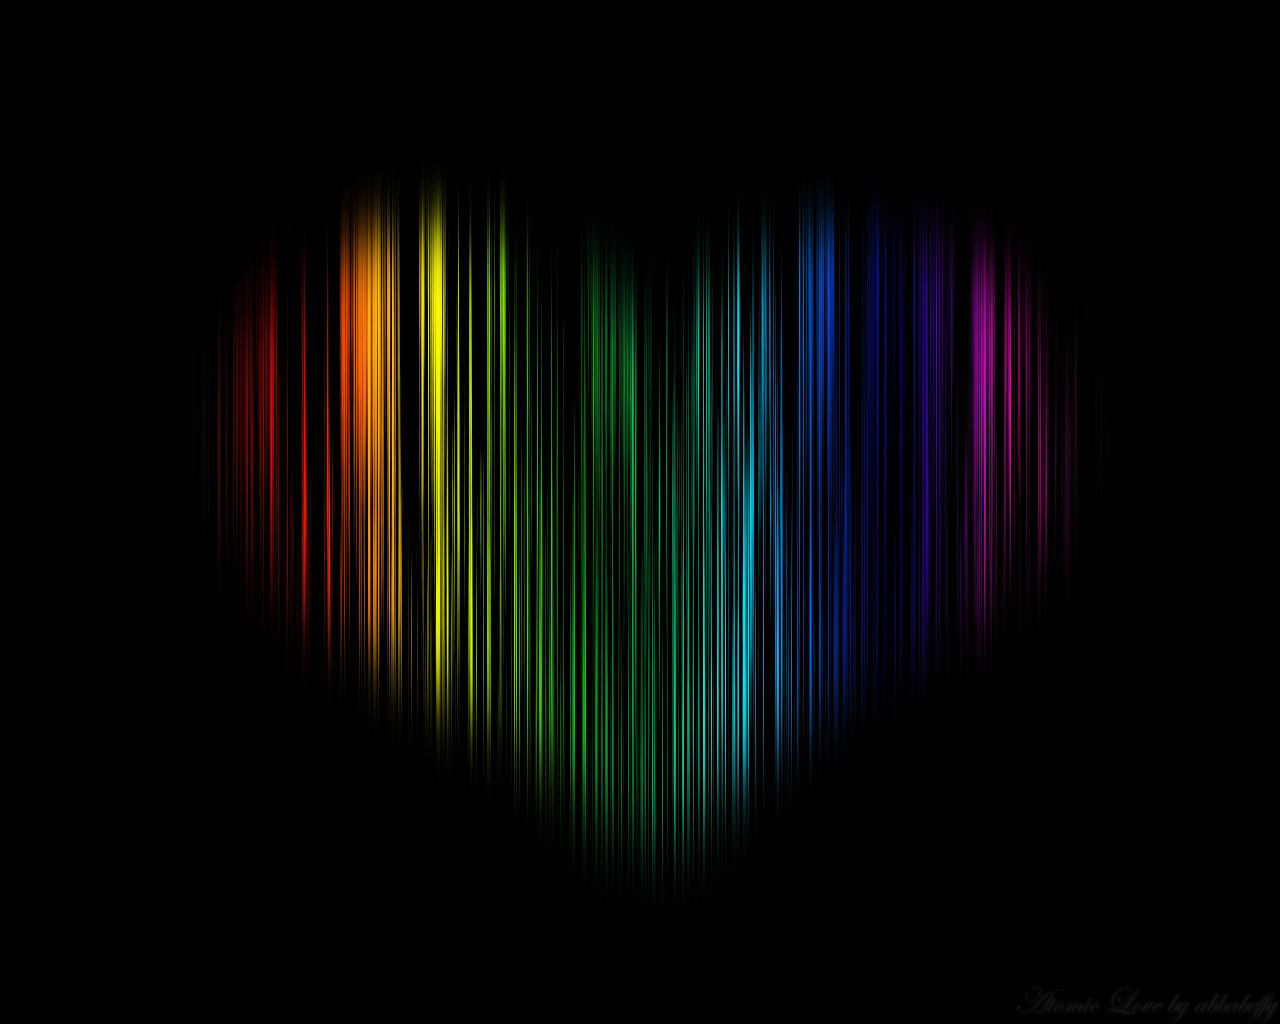 Love Wallpaper Black Background : Awesome colorful Love Image in Black Background Picture ...